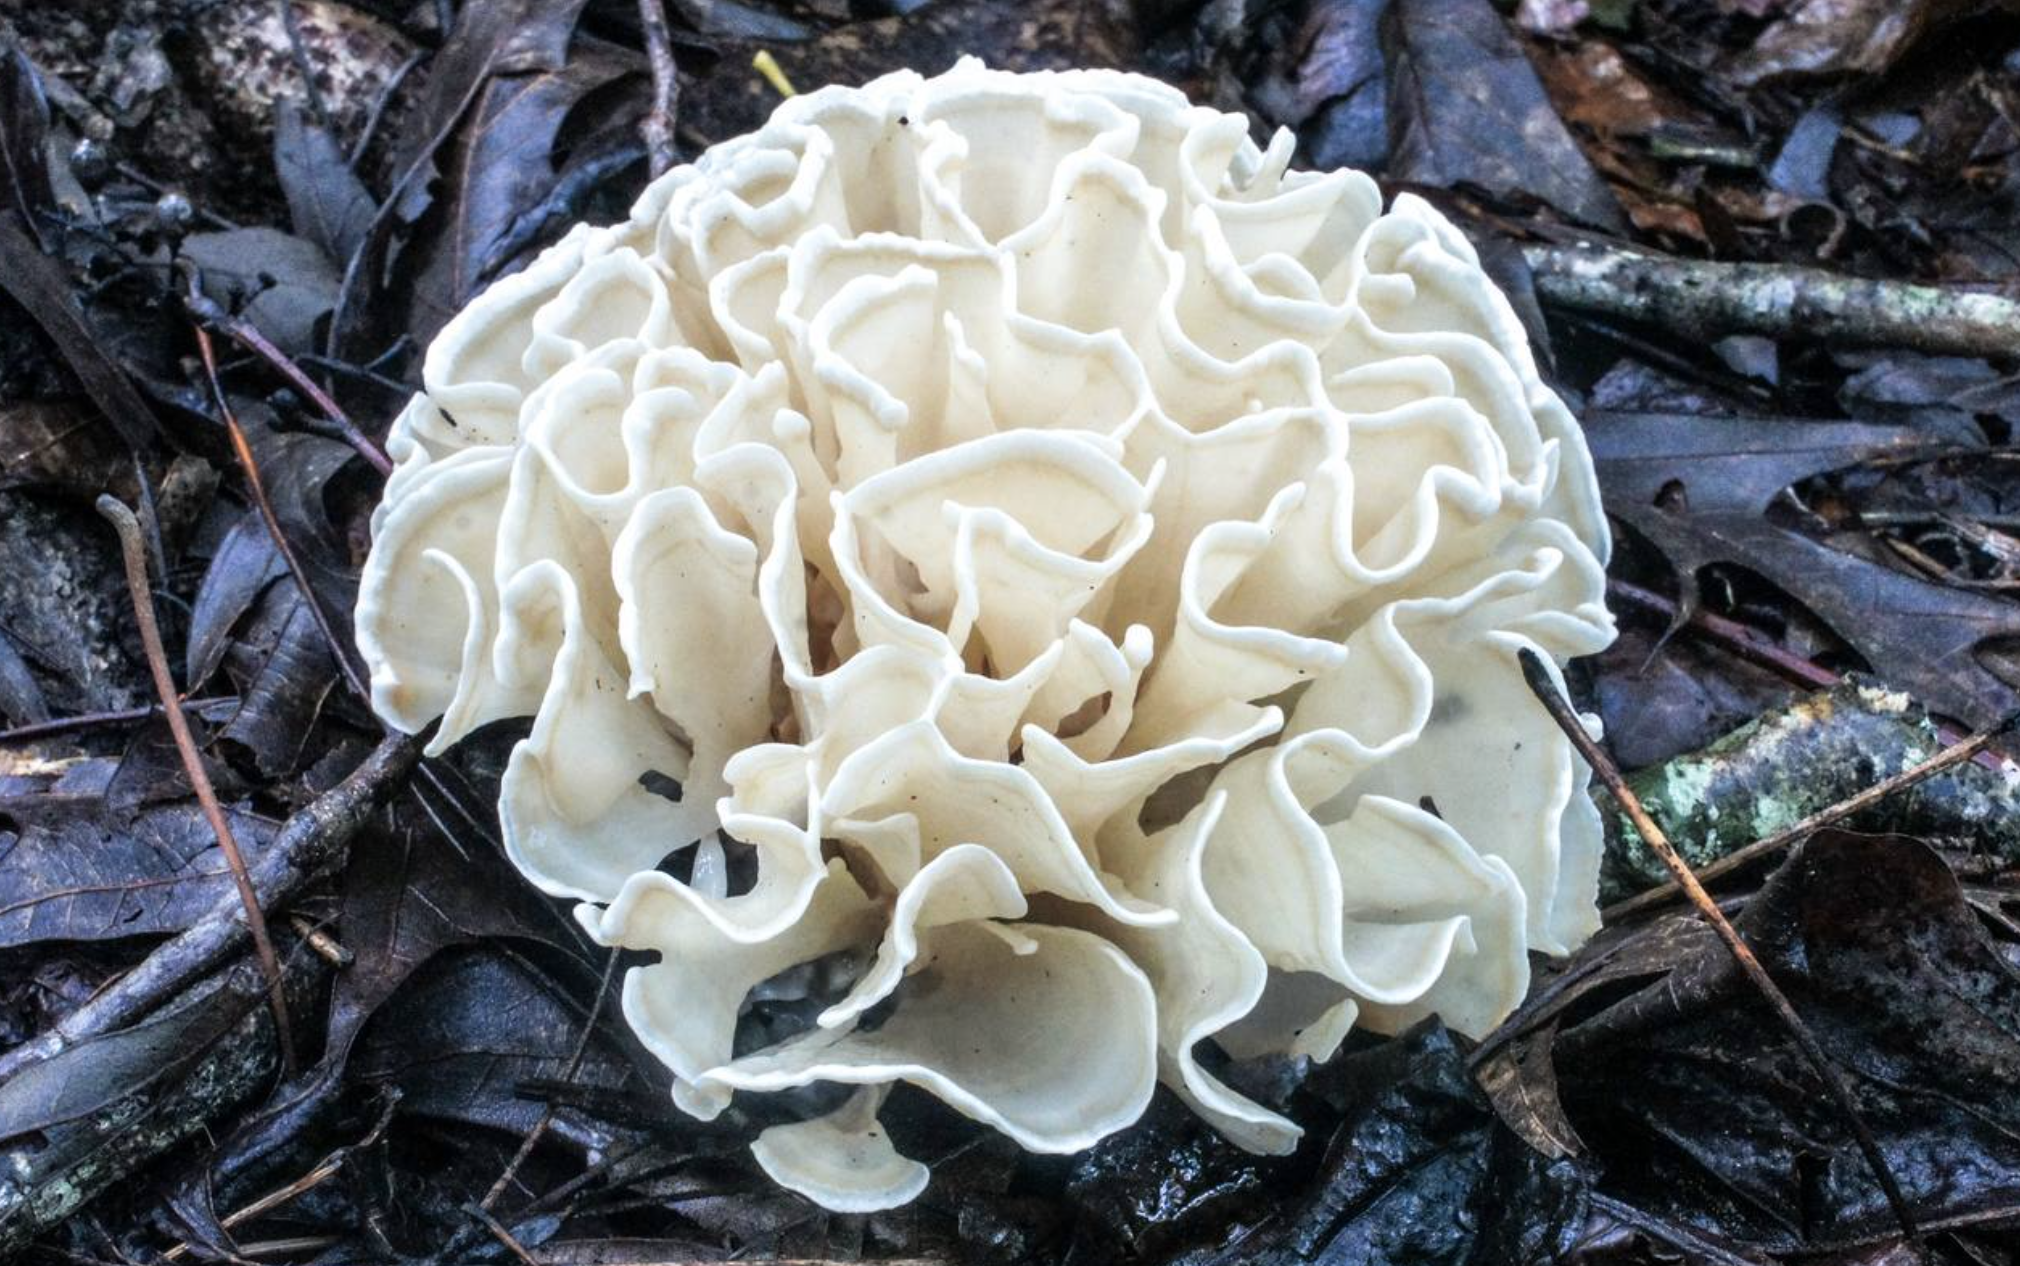 The closely related  Sparassis spathulata  found in Georgia by  Bill Sheehan .